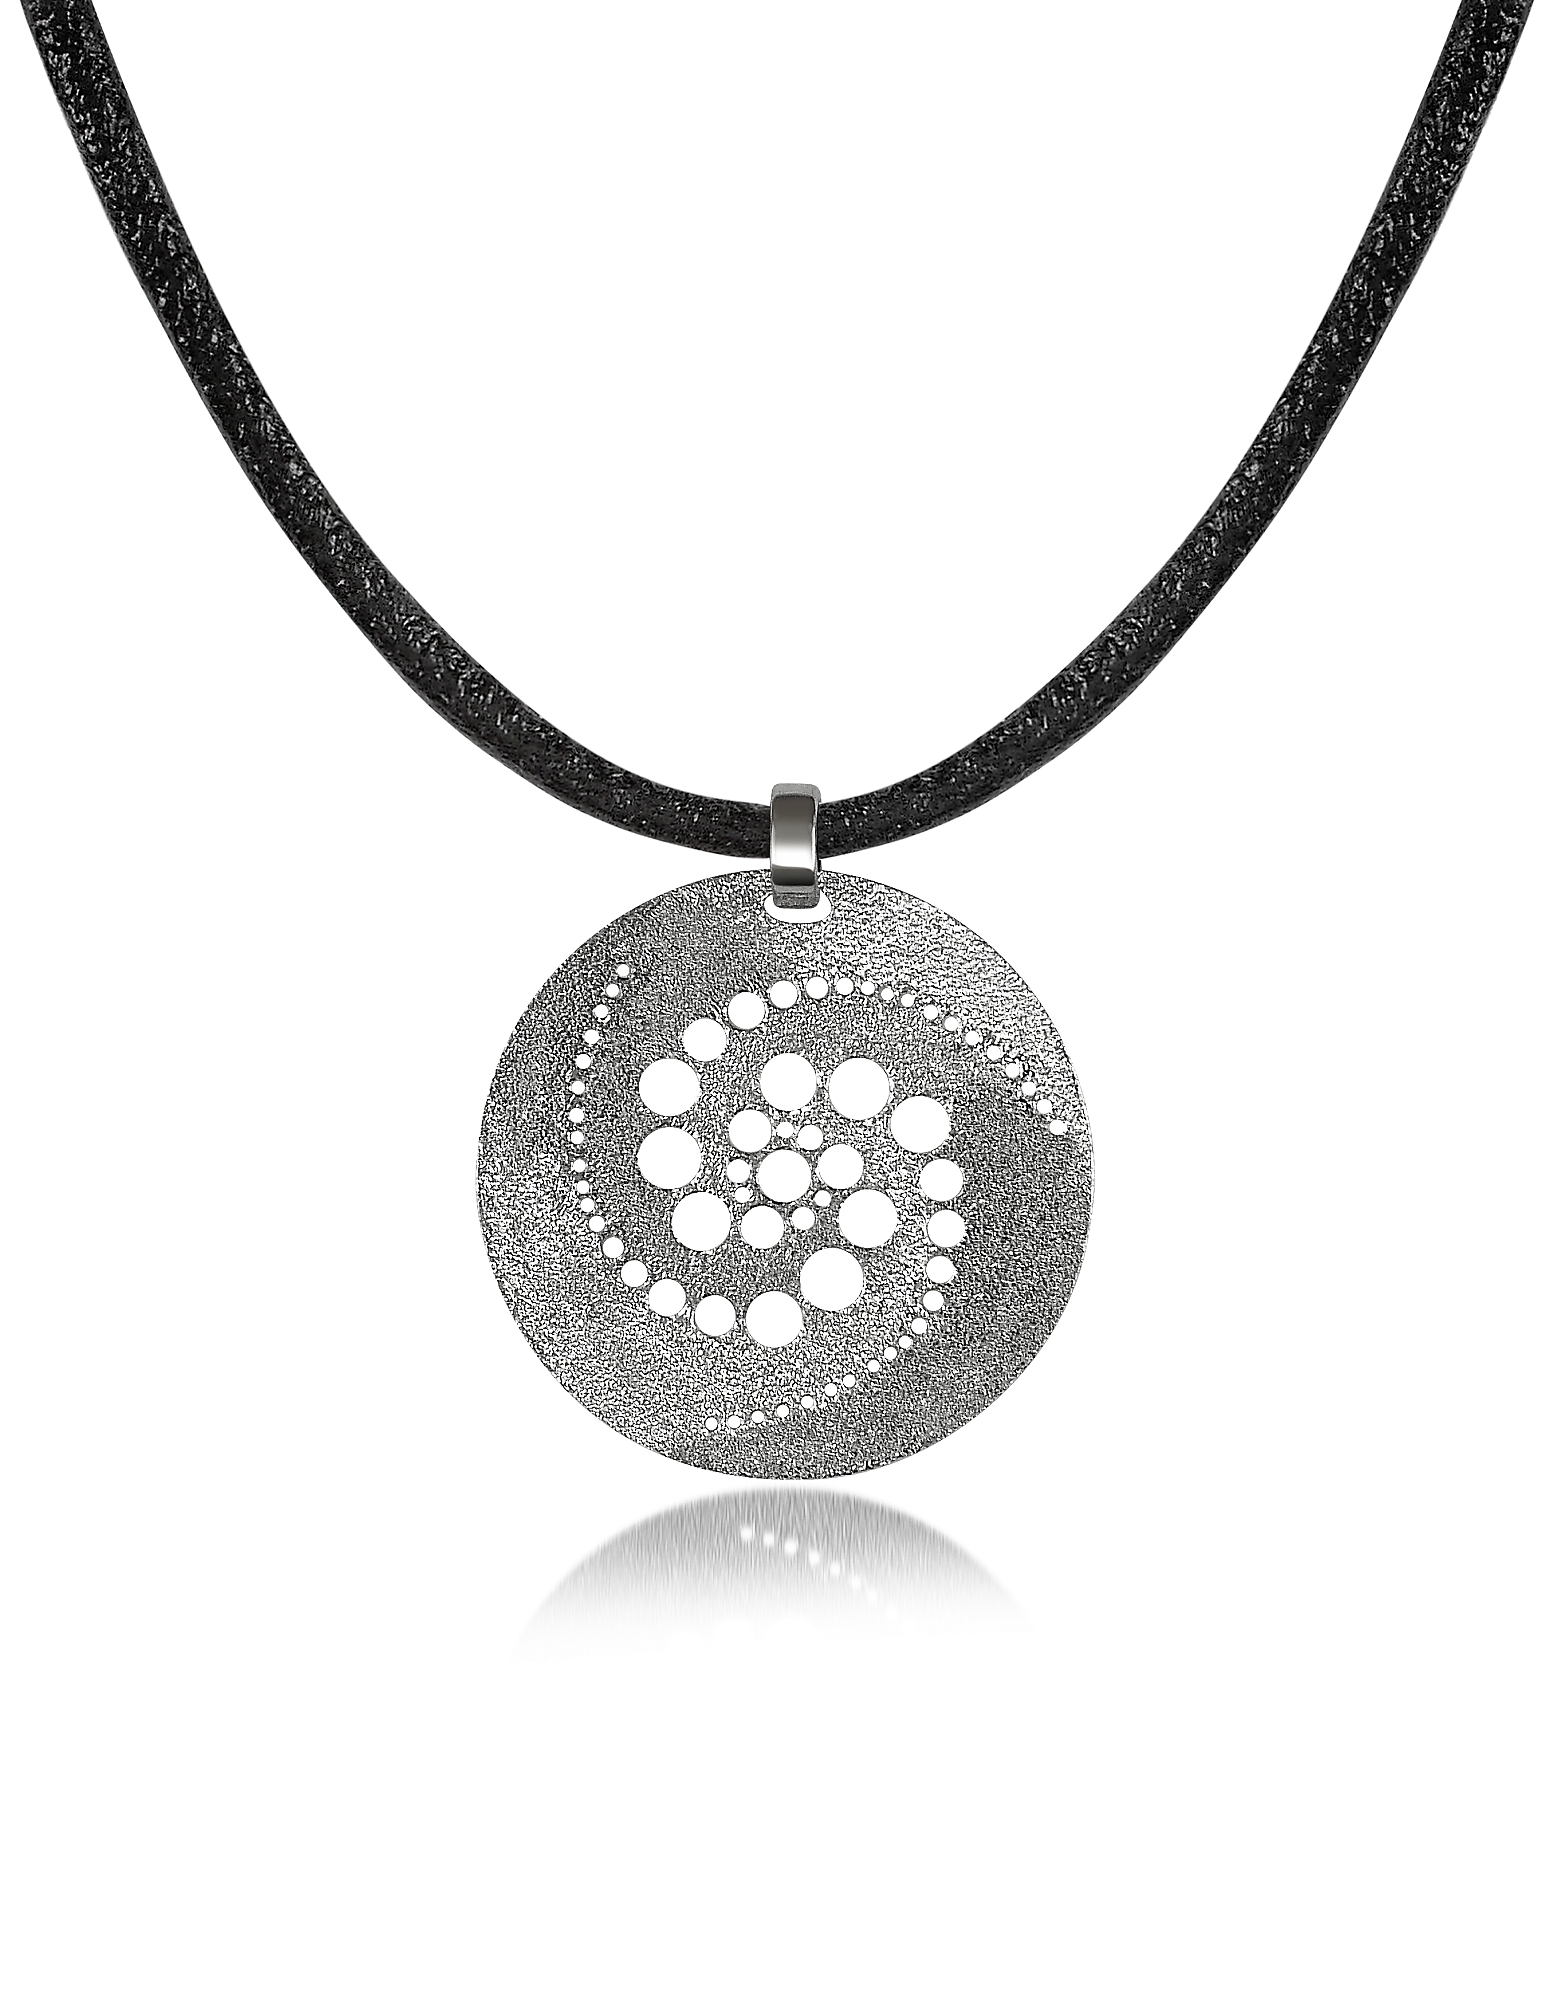 Stefano Patriarchi Necklaces, Silver Etched Crop Circle Round Pendant w/Leather Lace